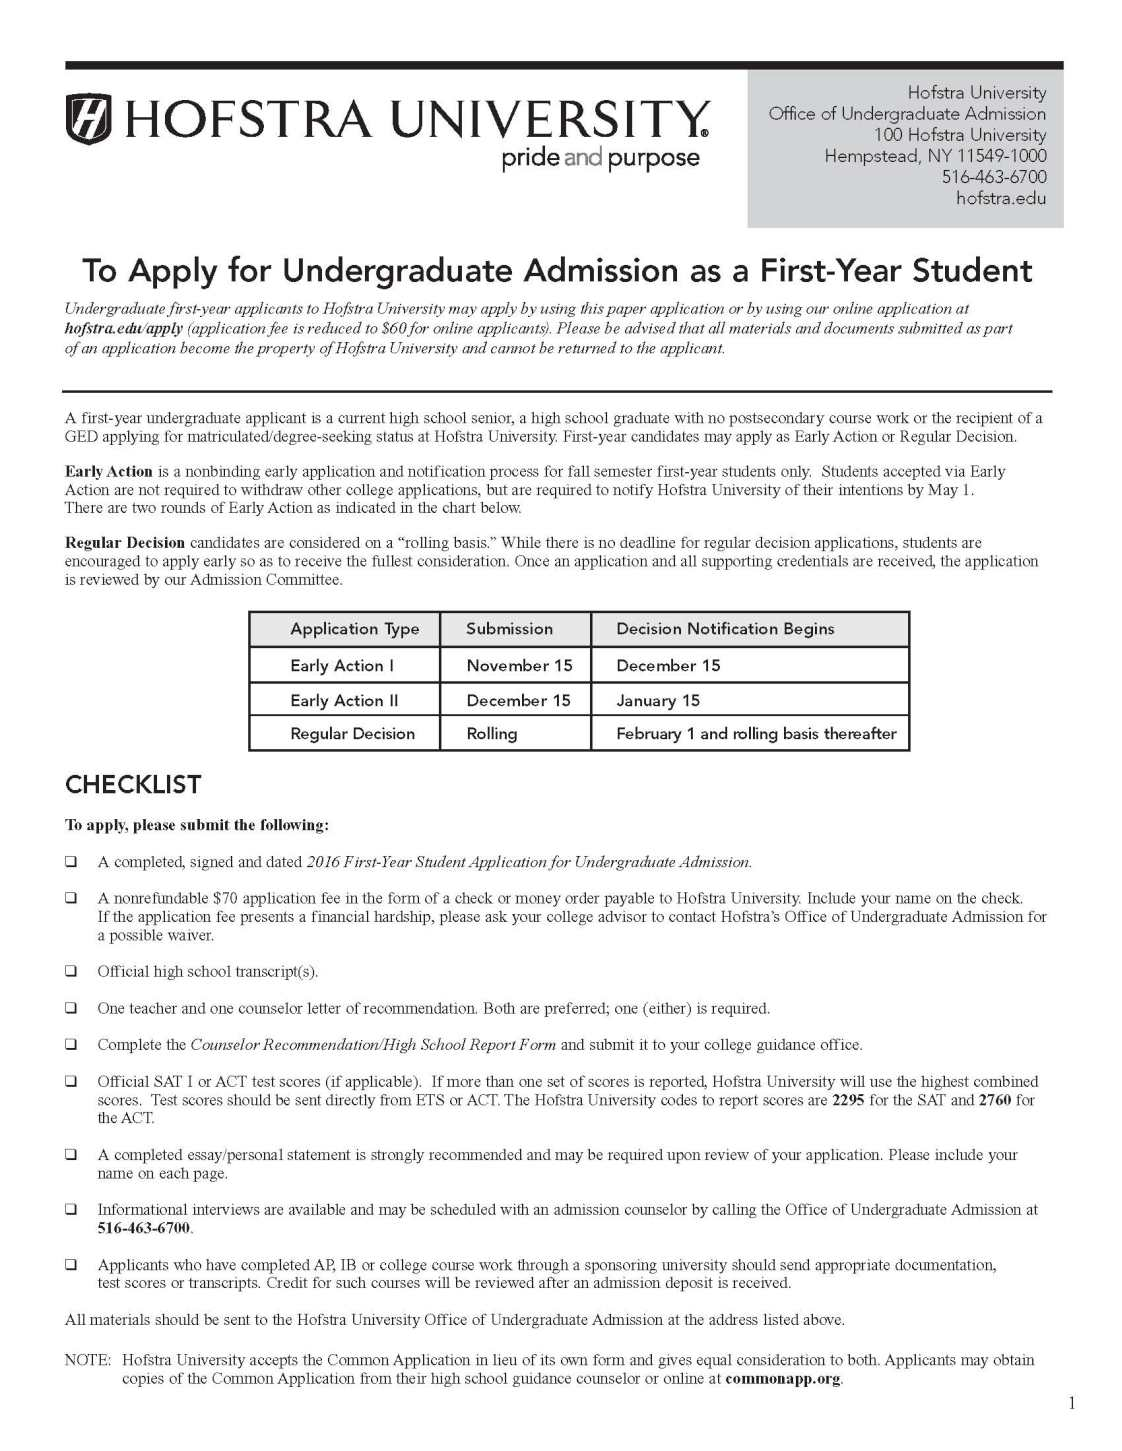 hofstra admissions essay This is transfer and admissions information for hofstra university students can compare college and university transfer information before changing colleges.